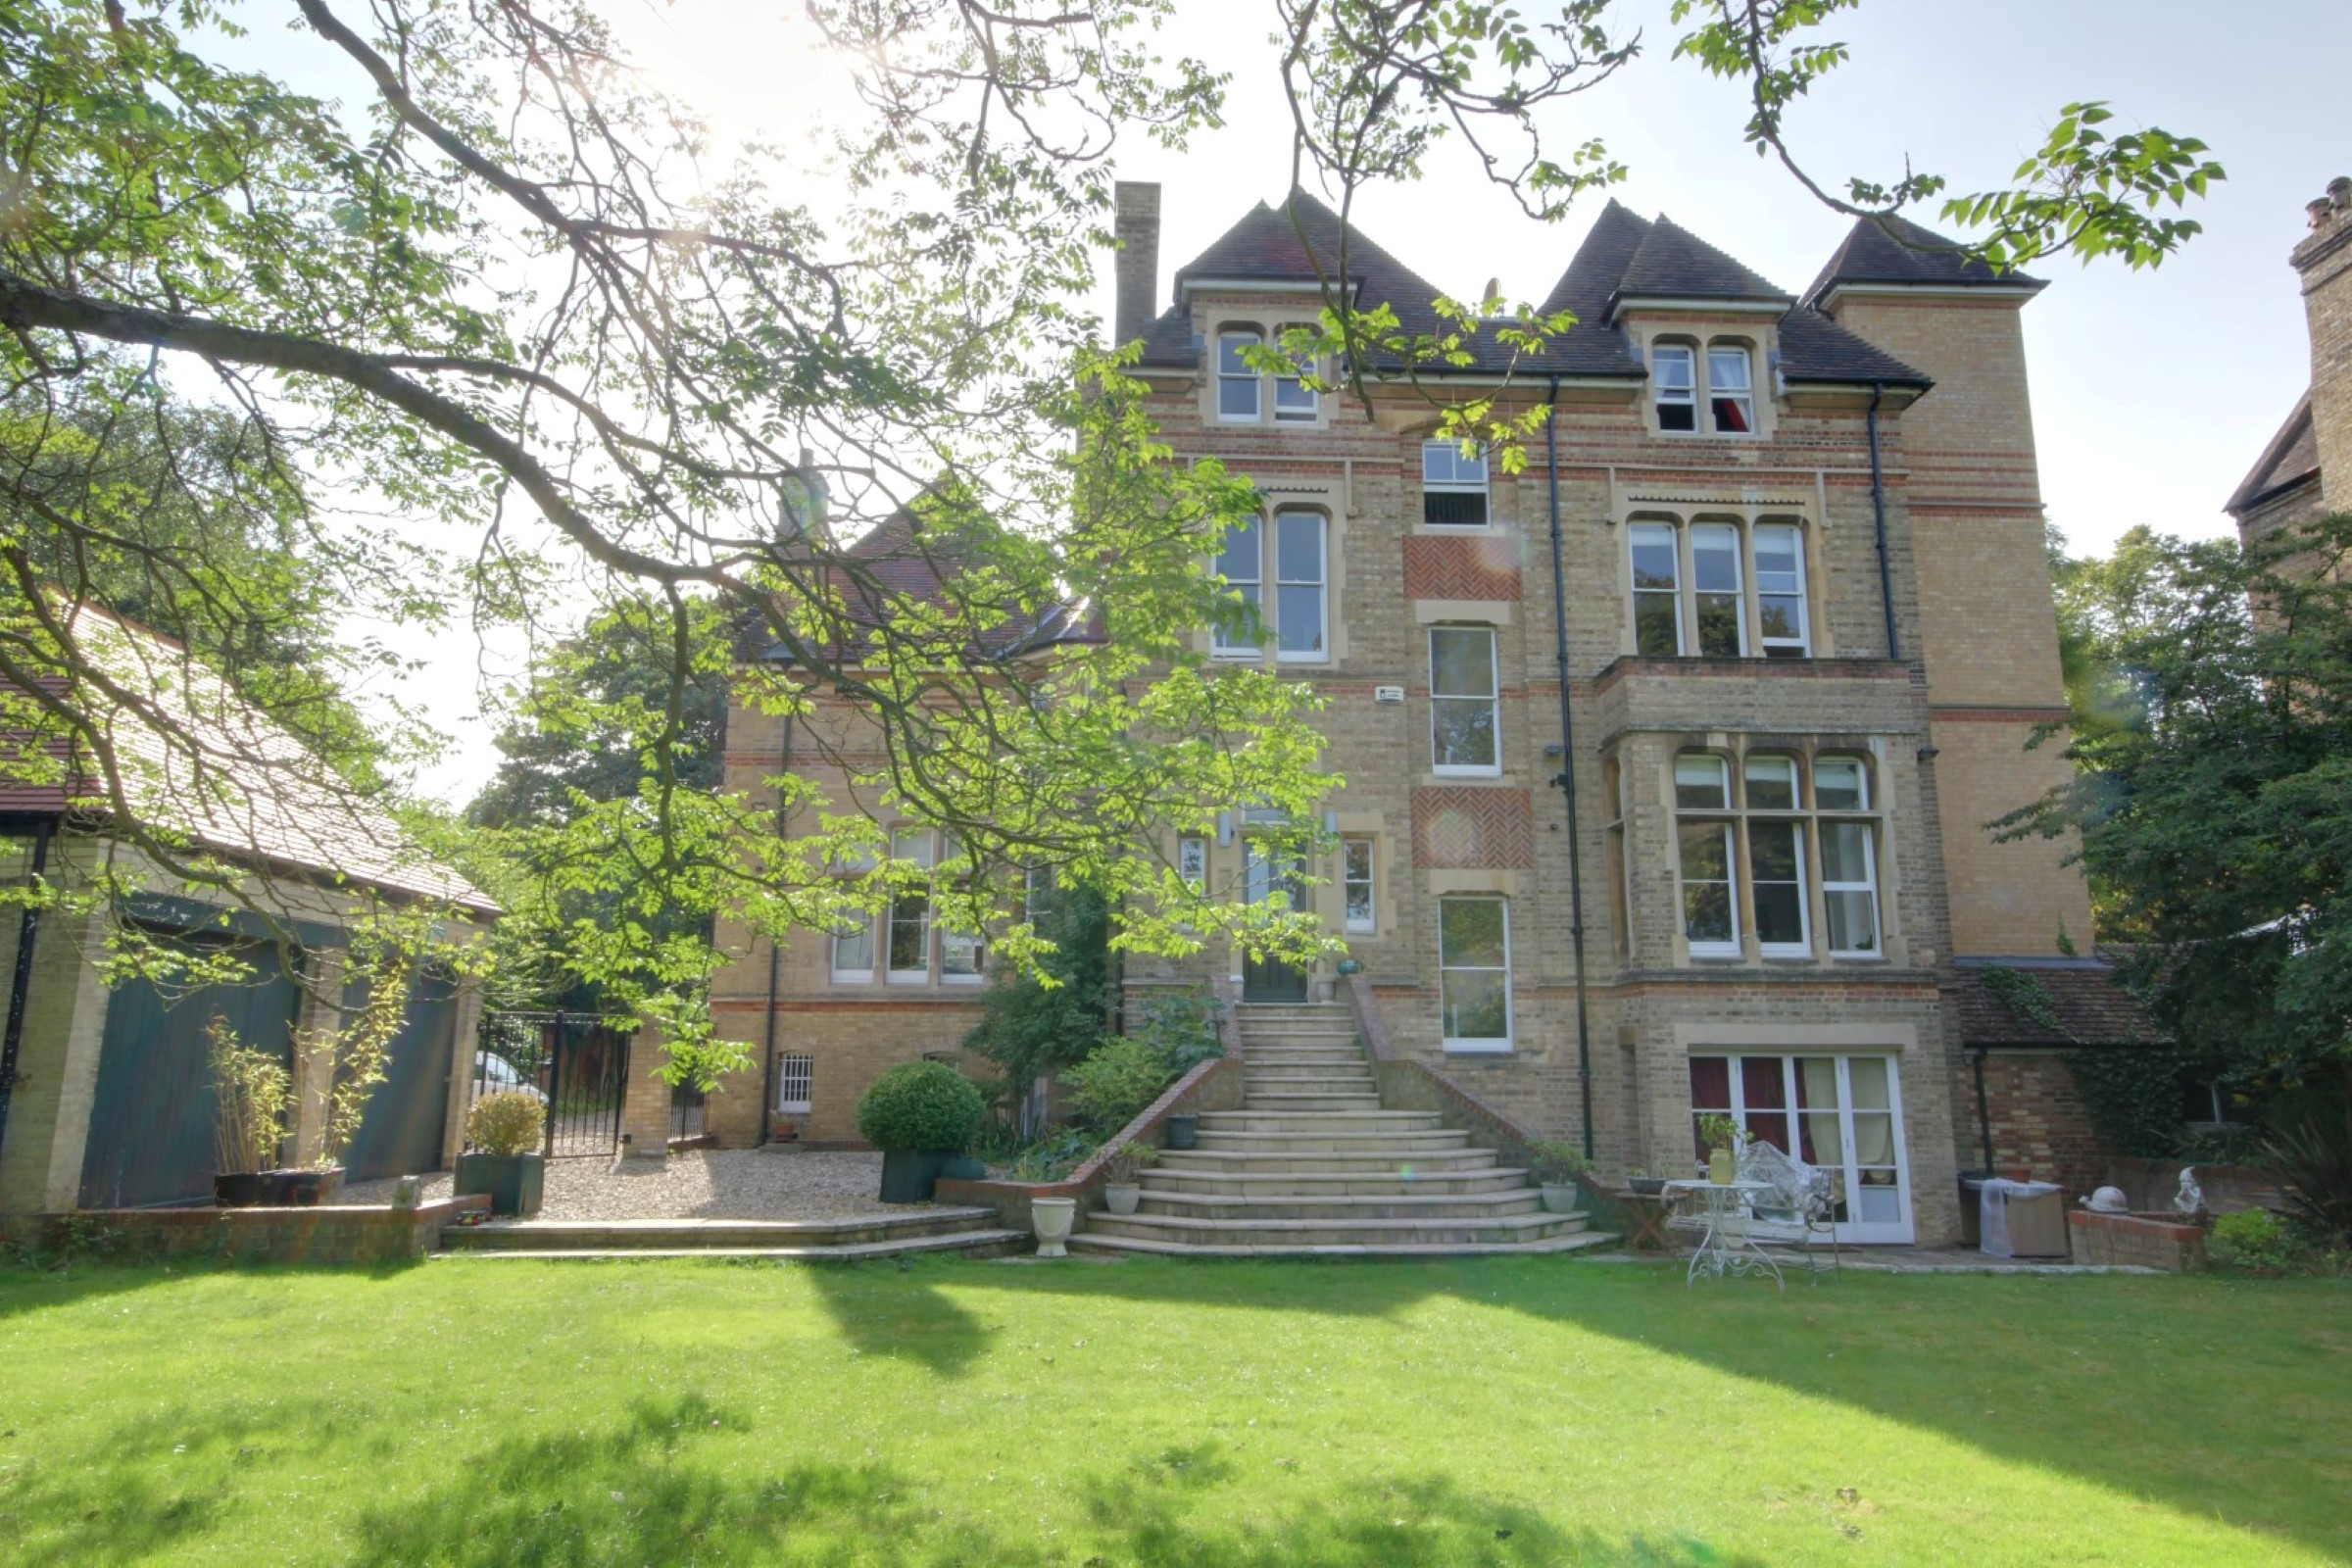 Single Family Home for Sale at Oxford Bradmore Road Oxford, England, OX26QP United Kingdom